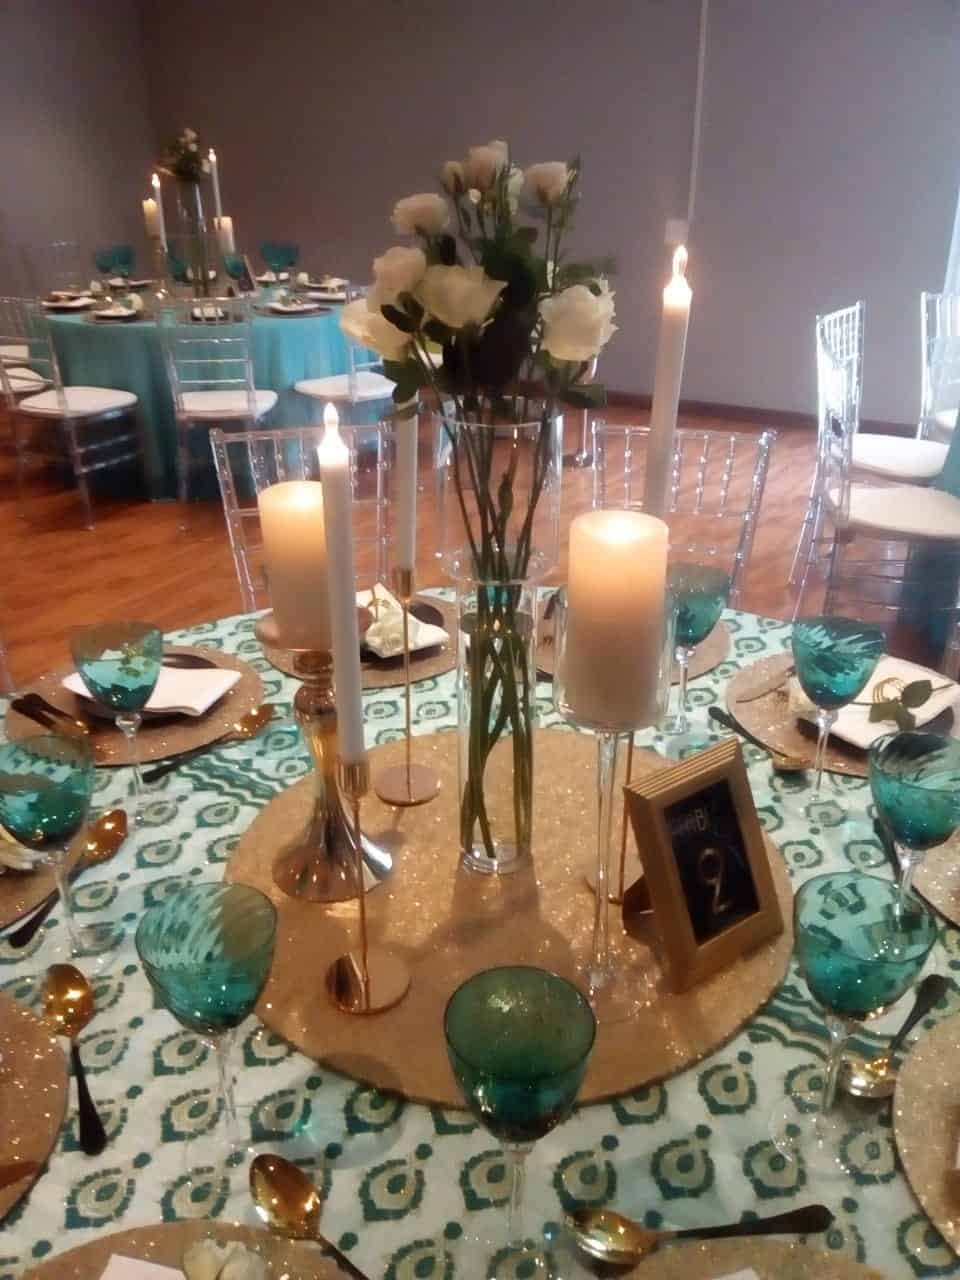 green and turquoise place setting on a table with candles